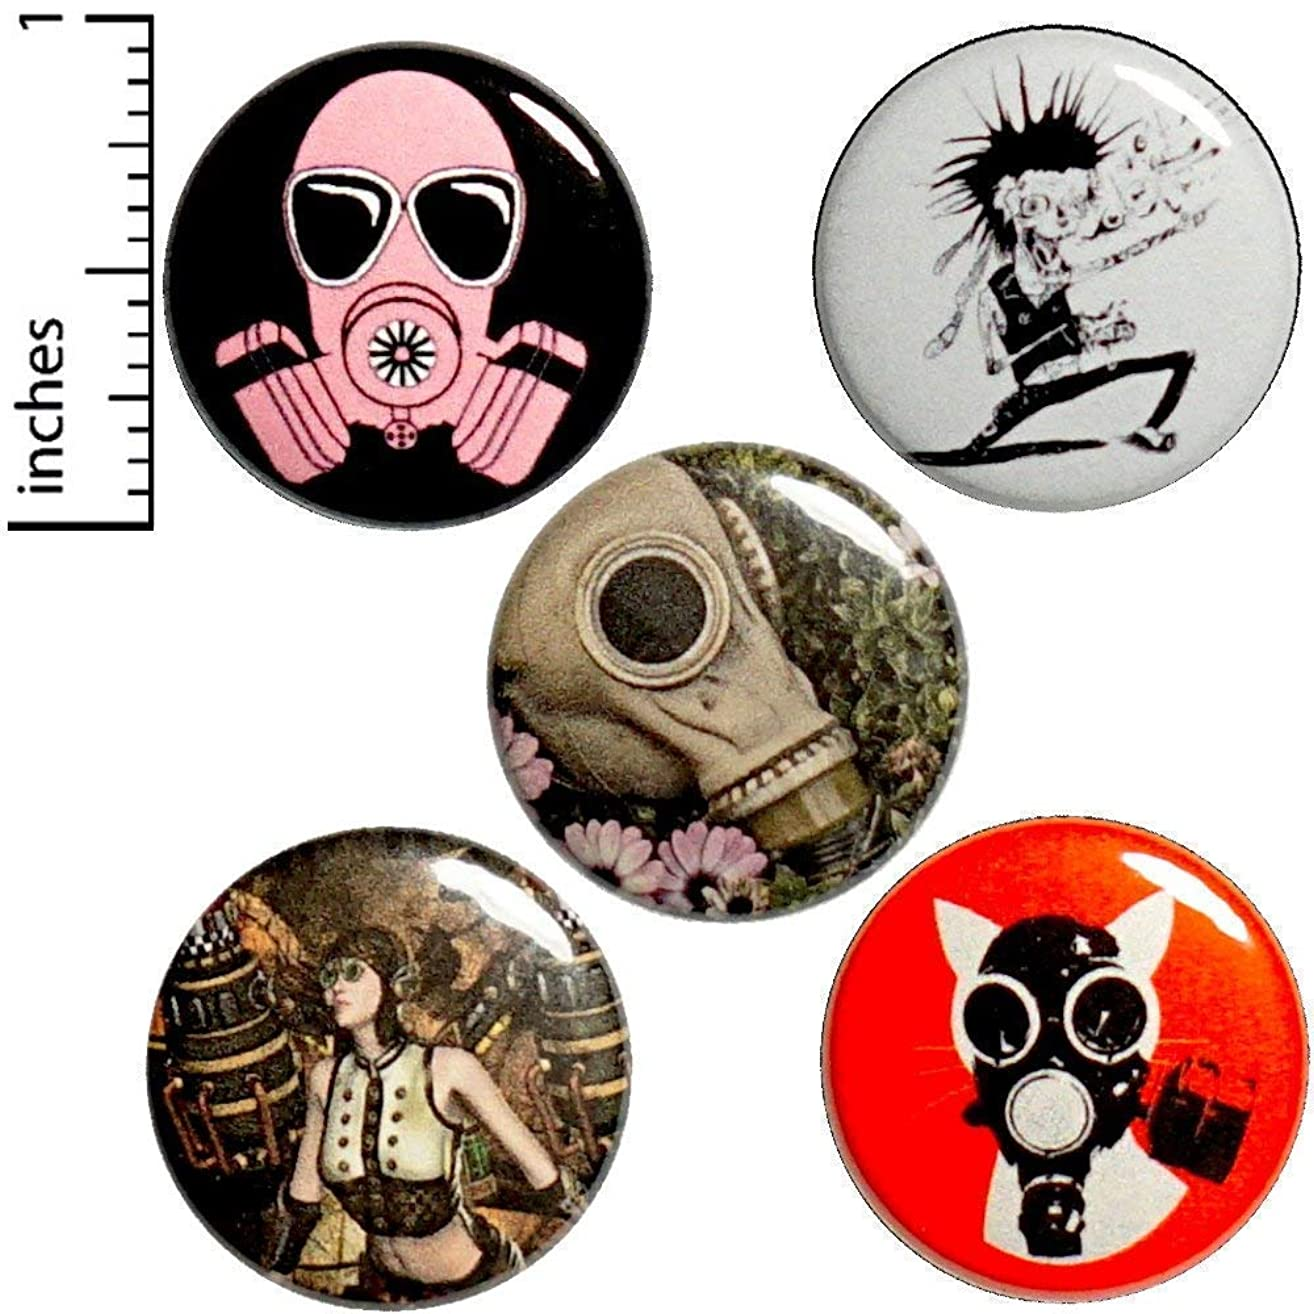 Punk Rock 5 Pack Buttons or Magnets 1 Inch P6-4